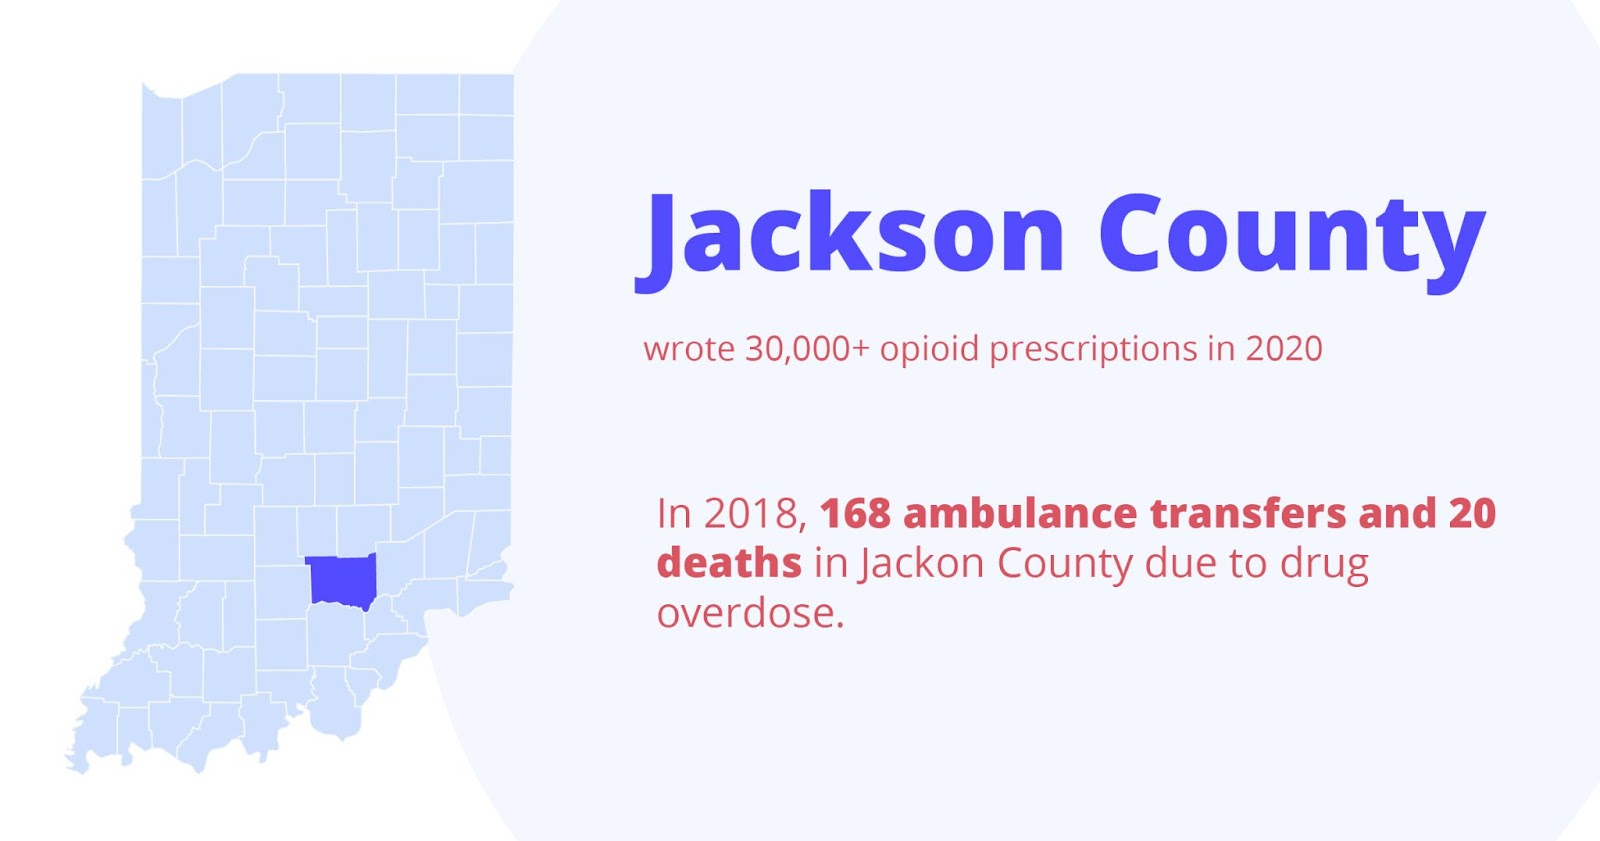 Jackson county  wrote 30,000+ opioid prescriptions in 2020. In 2018, 168 ambulance transfers and 20 deaths in jackson county due to drug overdose.